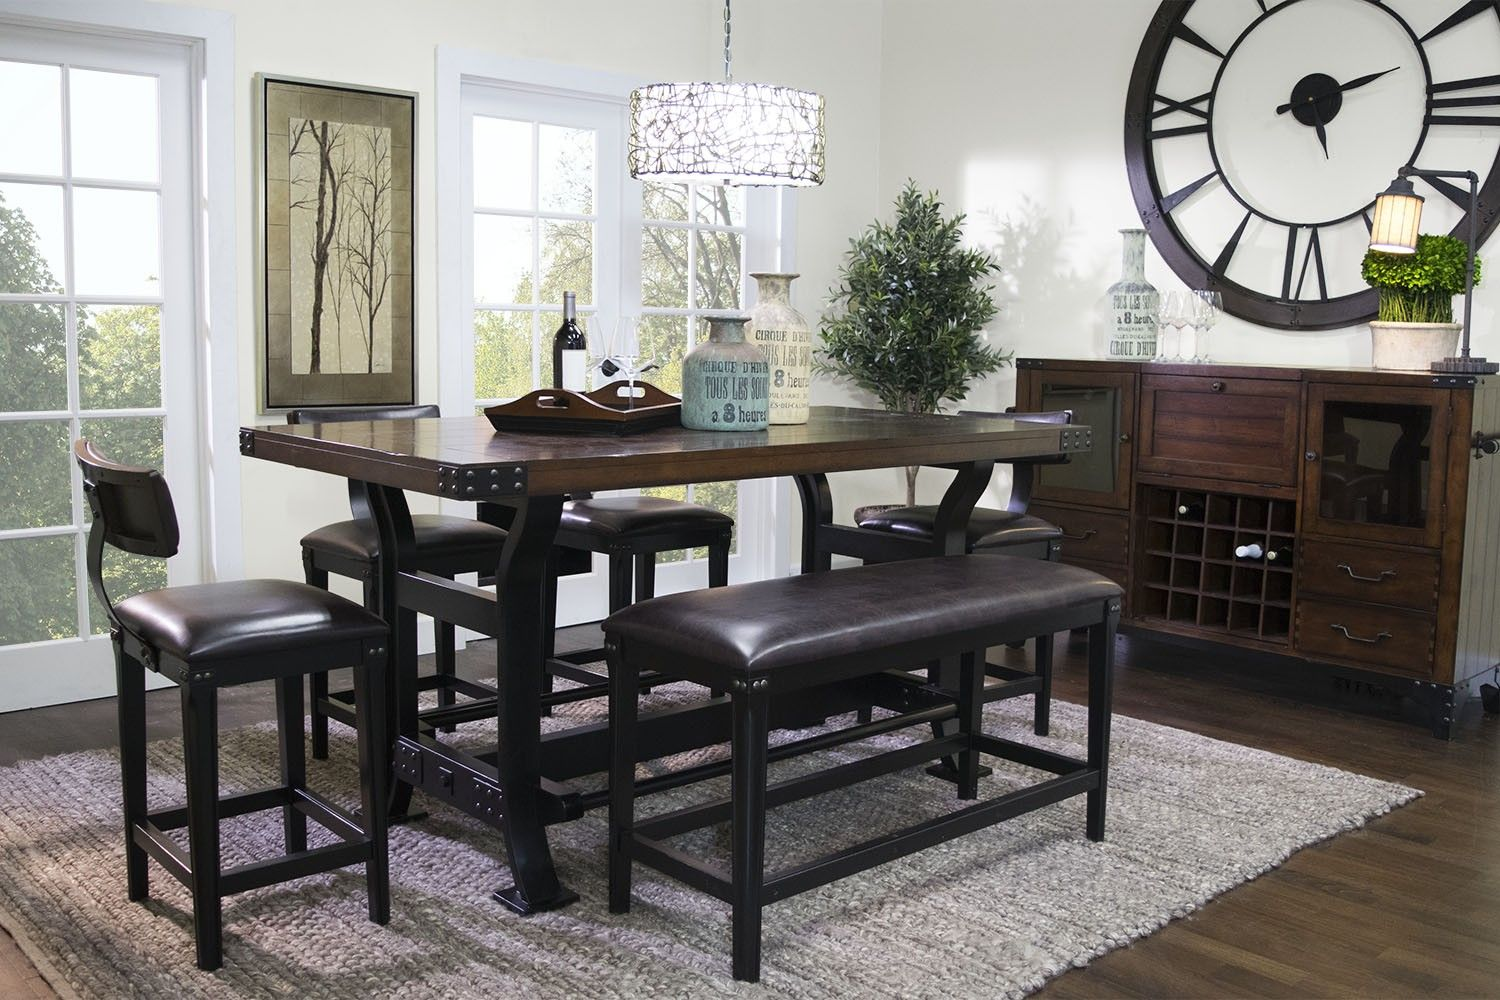 Iron Works Counter Height Dining Room Media Image 1 Dining Room